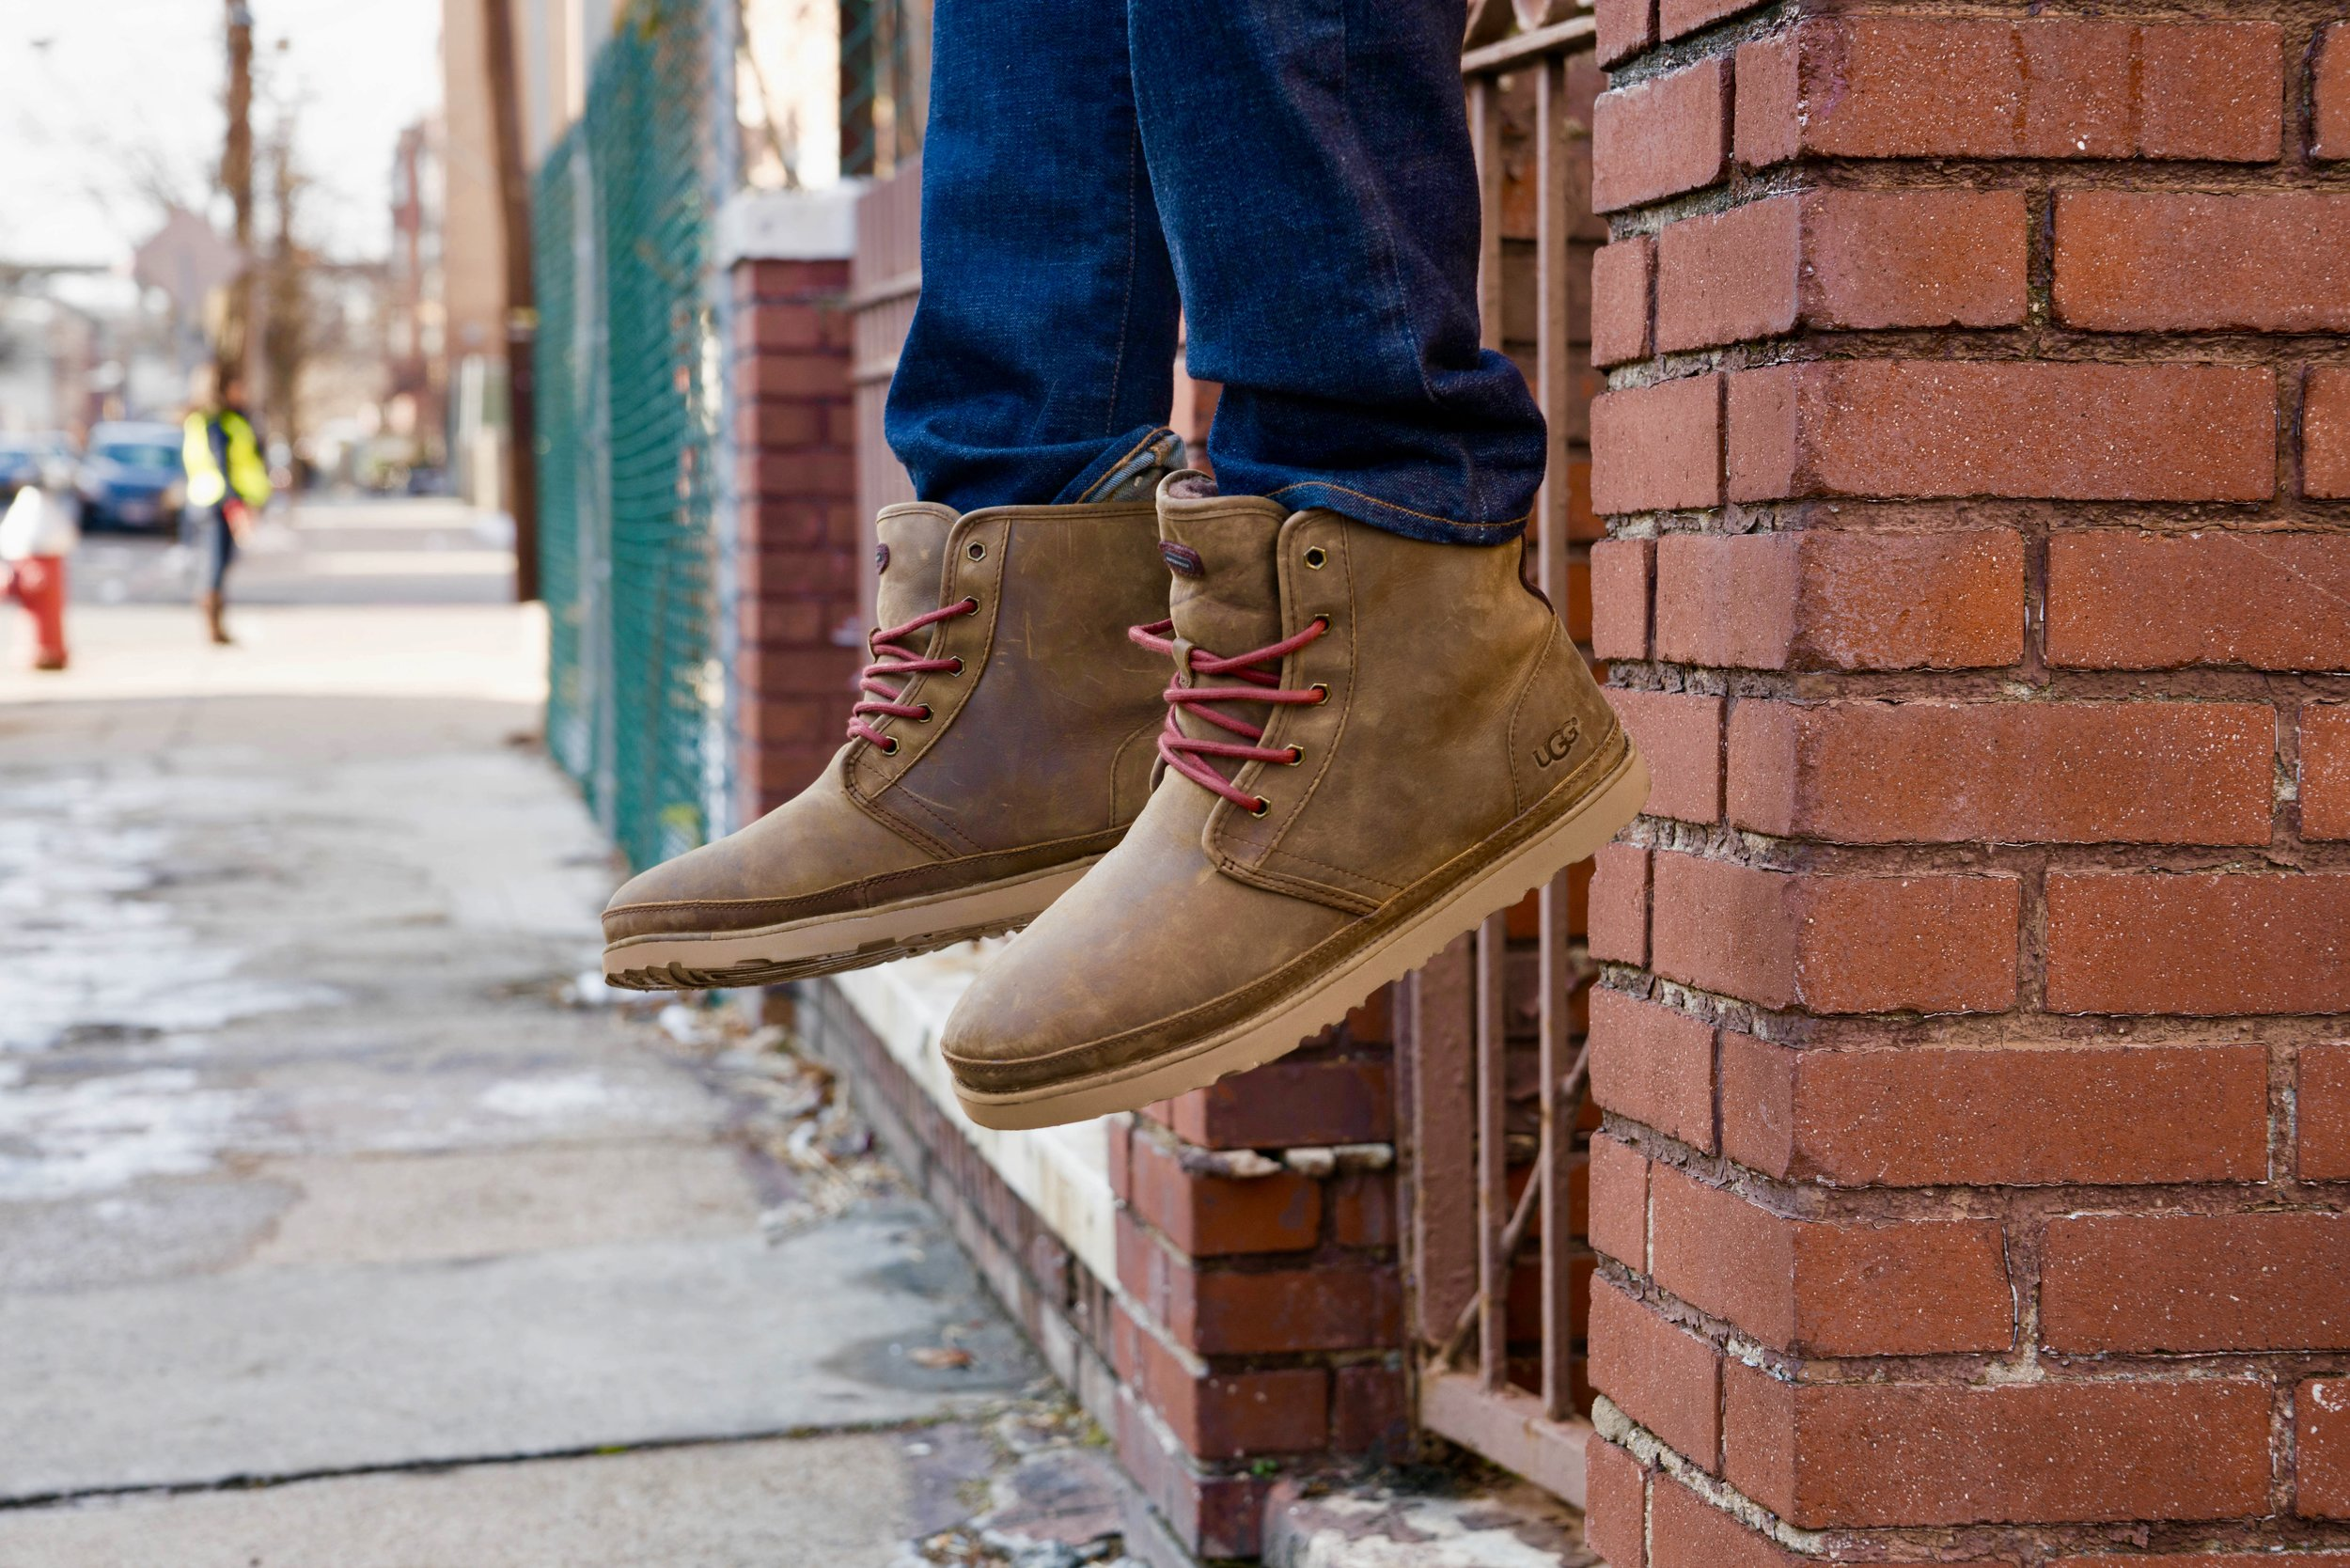 During the winter months the Harkley is a perfect boot to explore the city in.  - #UggLife #ZapposStyle